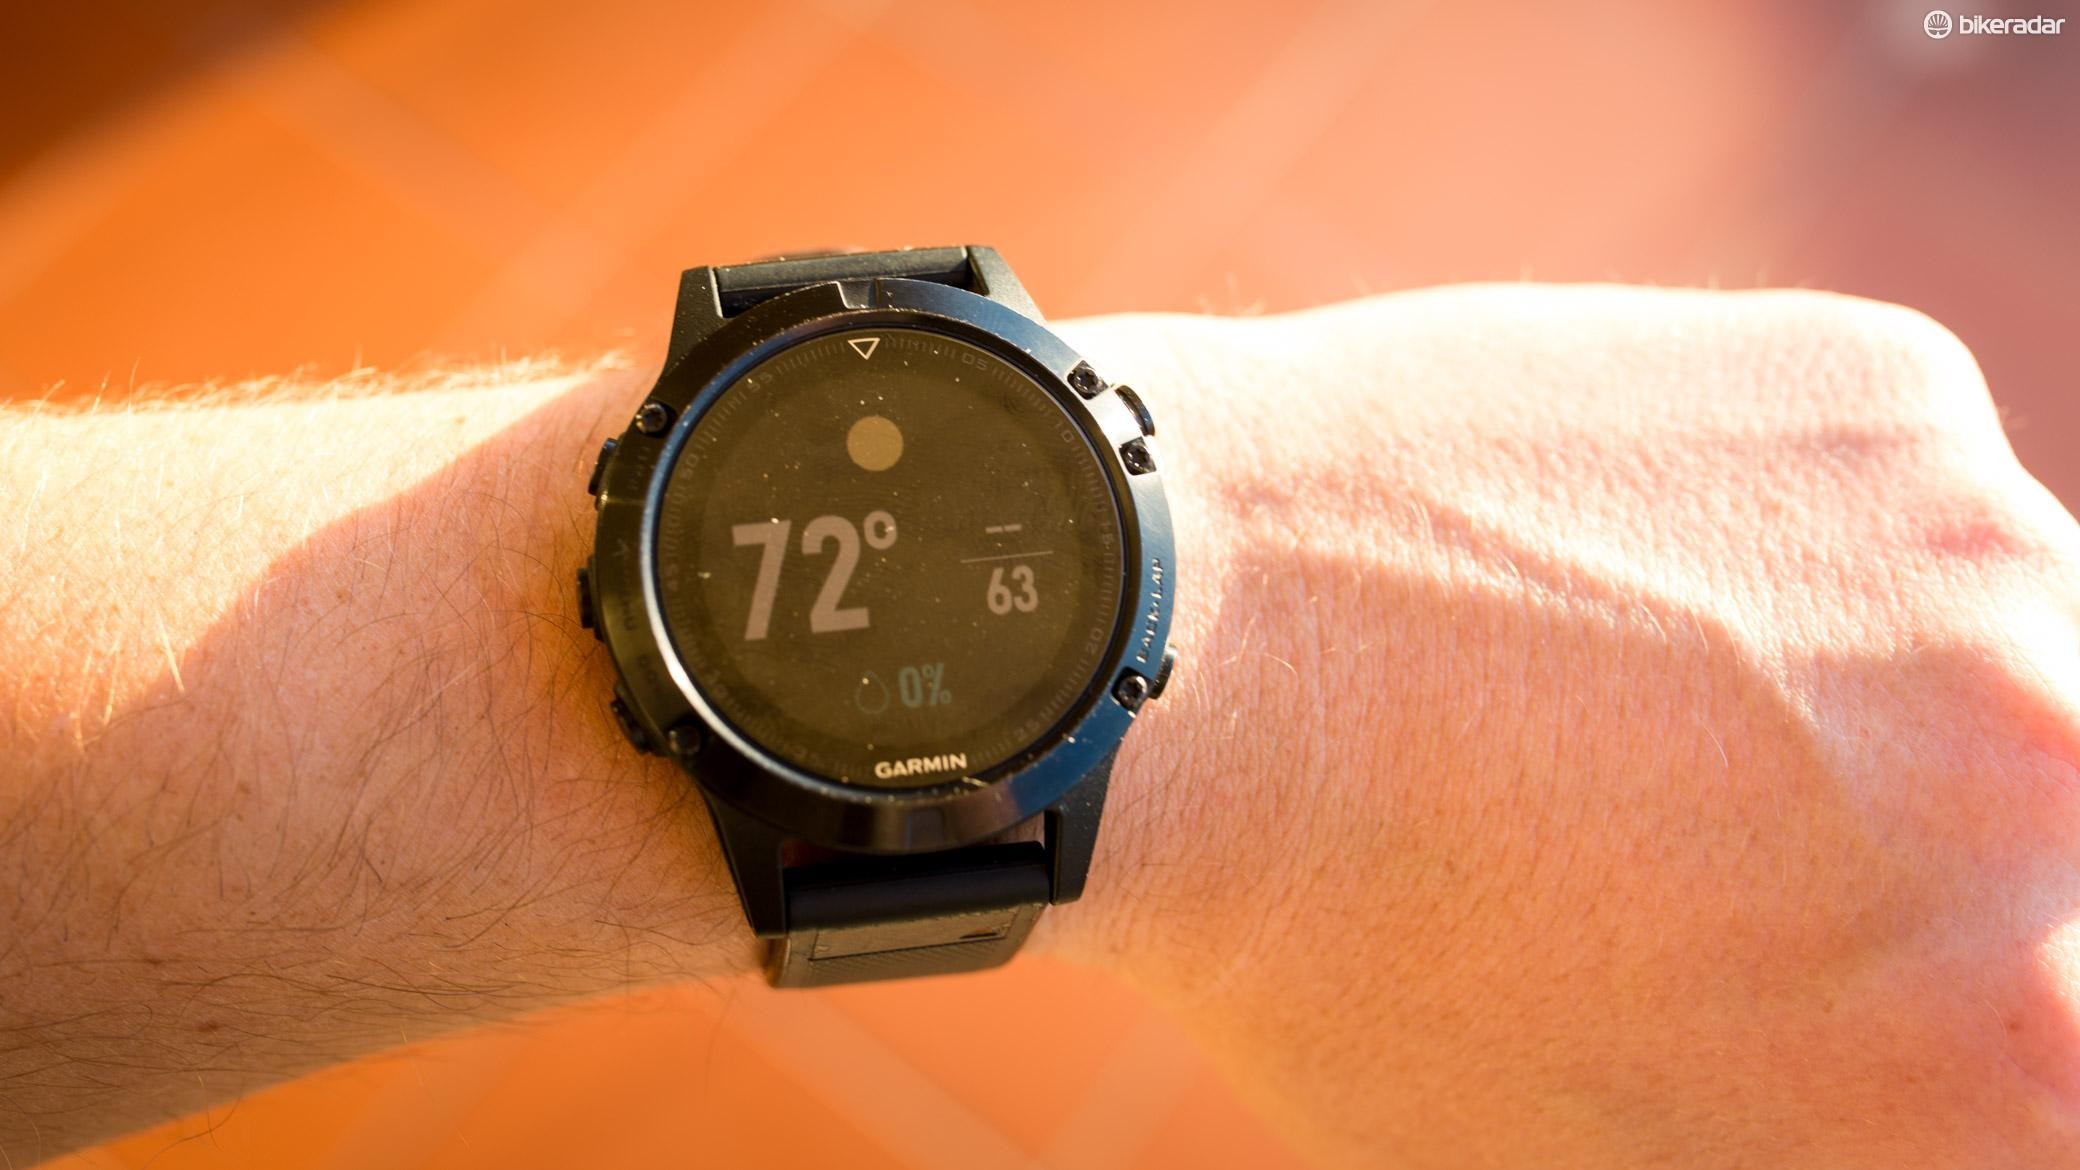 Through a Bluetooth connection to your phone, the fenix 5 can give a weather report